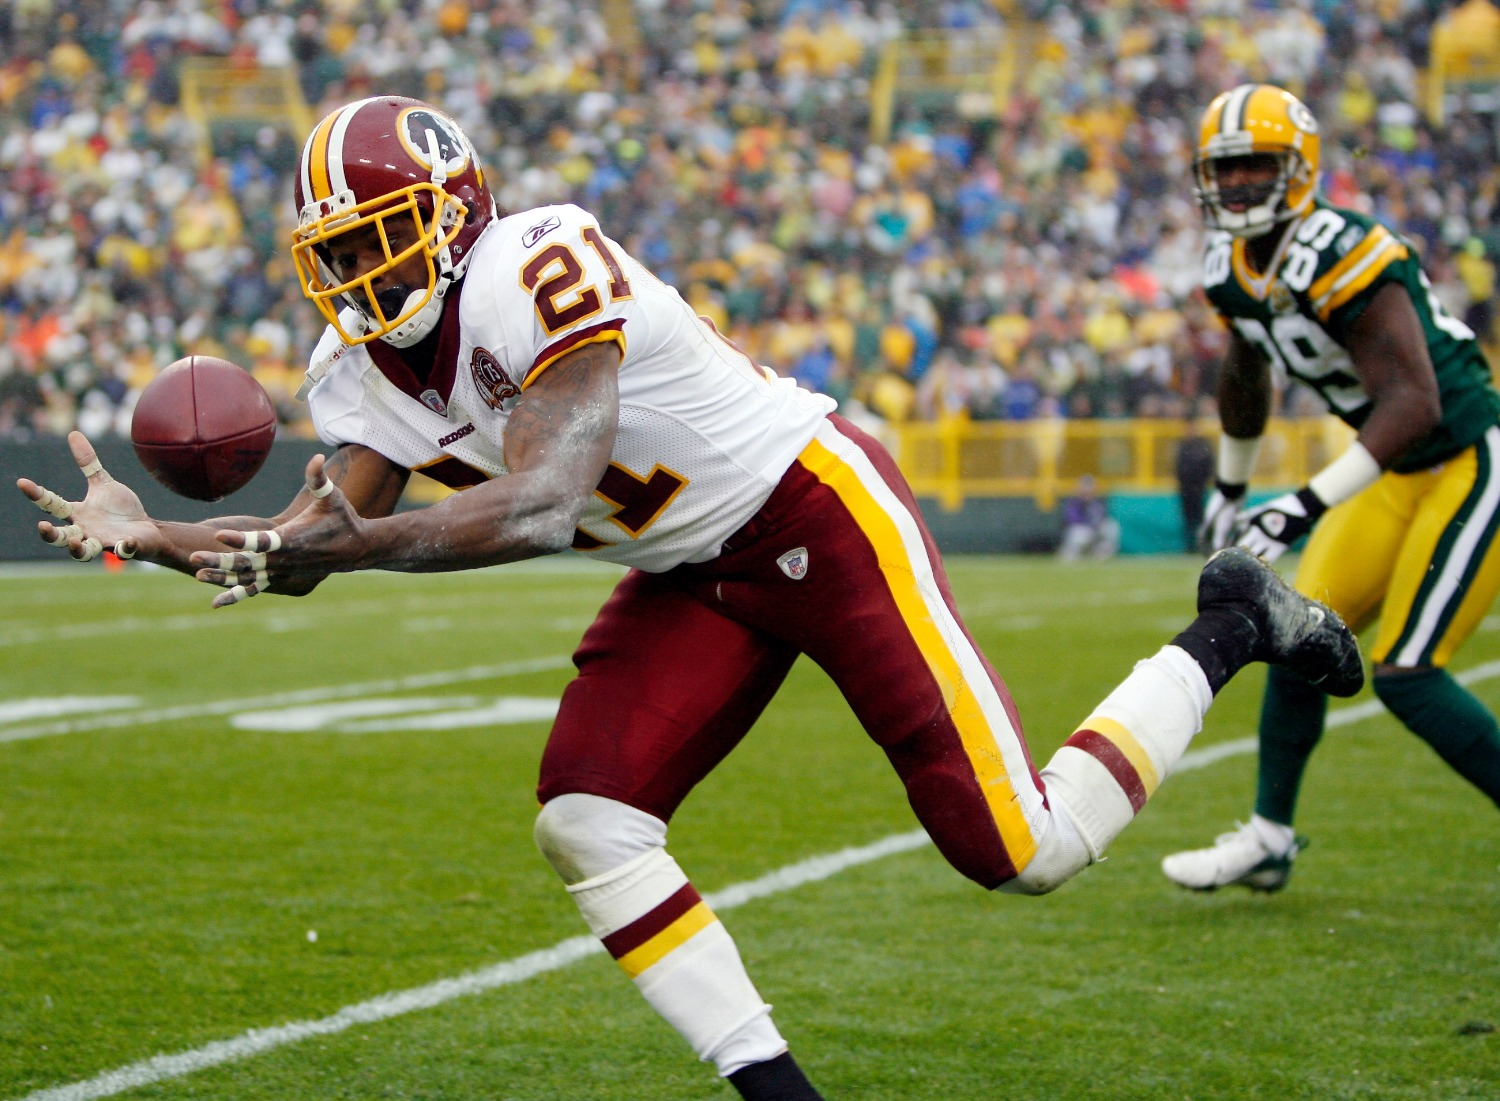 The Washington Football Team just honored Sean Taylor in a permanent way.